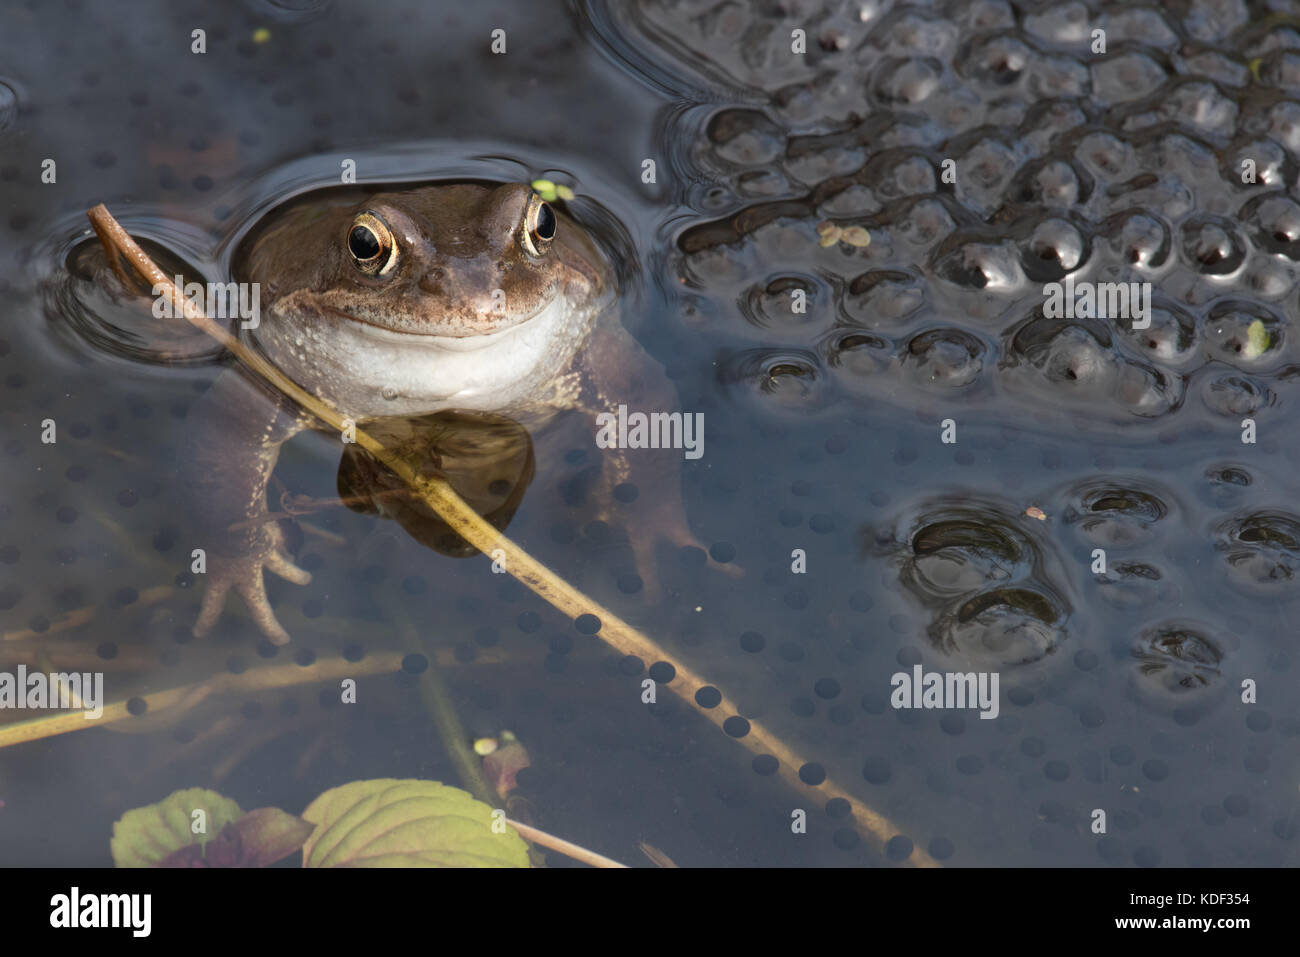 common frog in garden pond with spawn - Stock Image